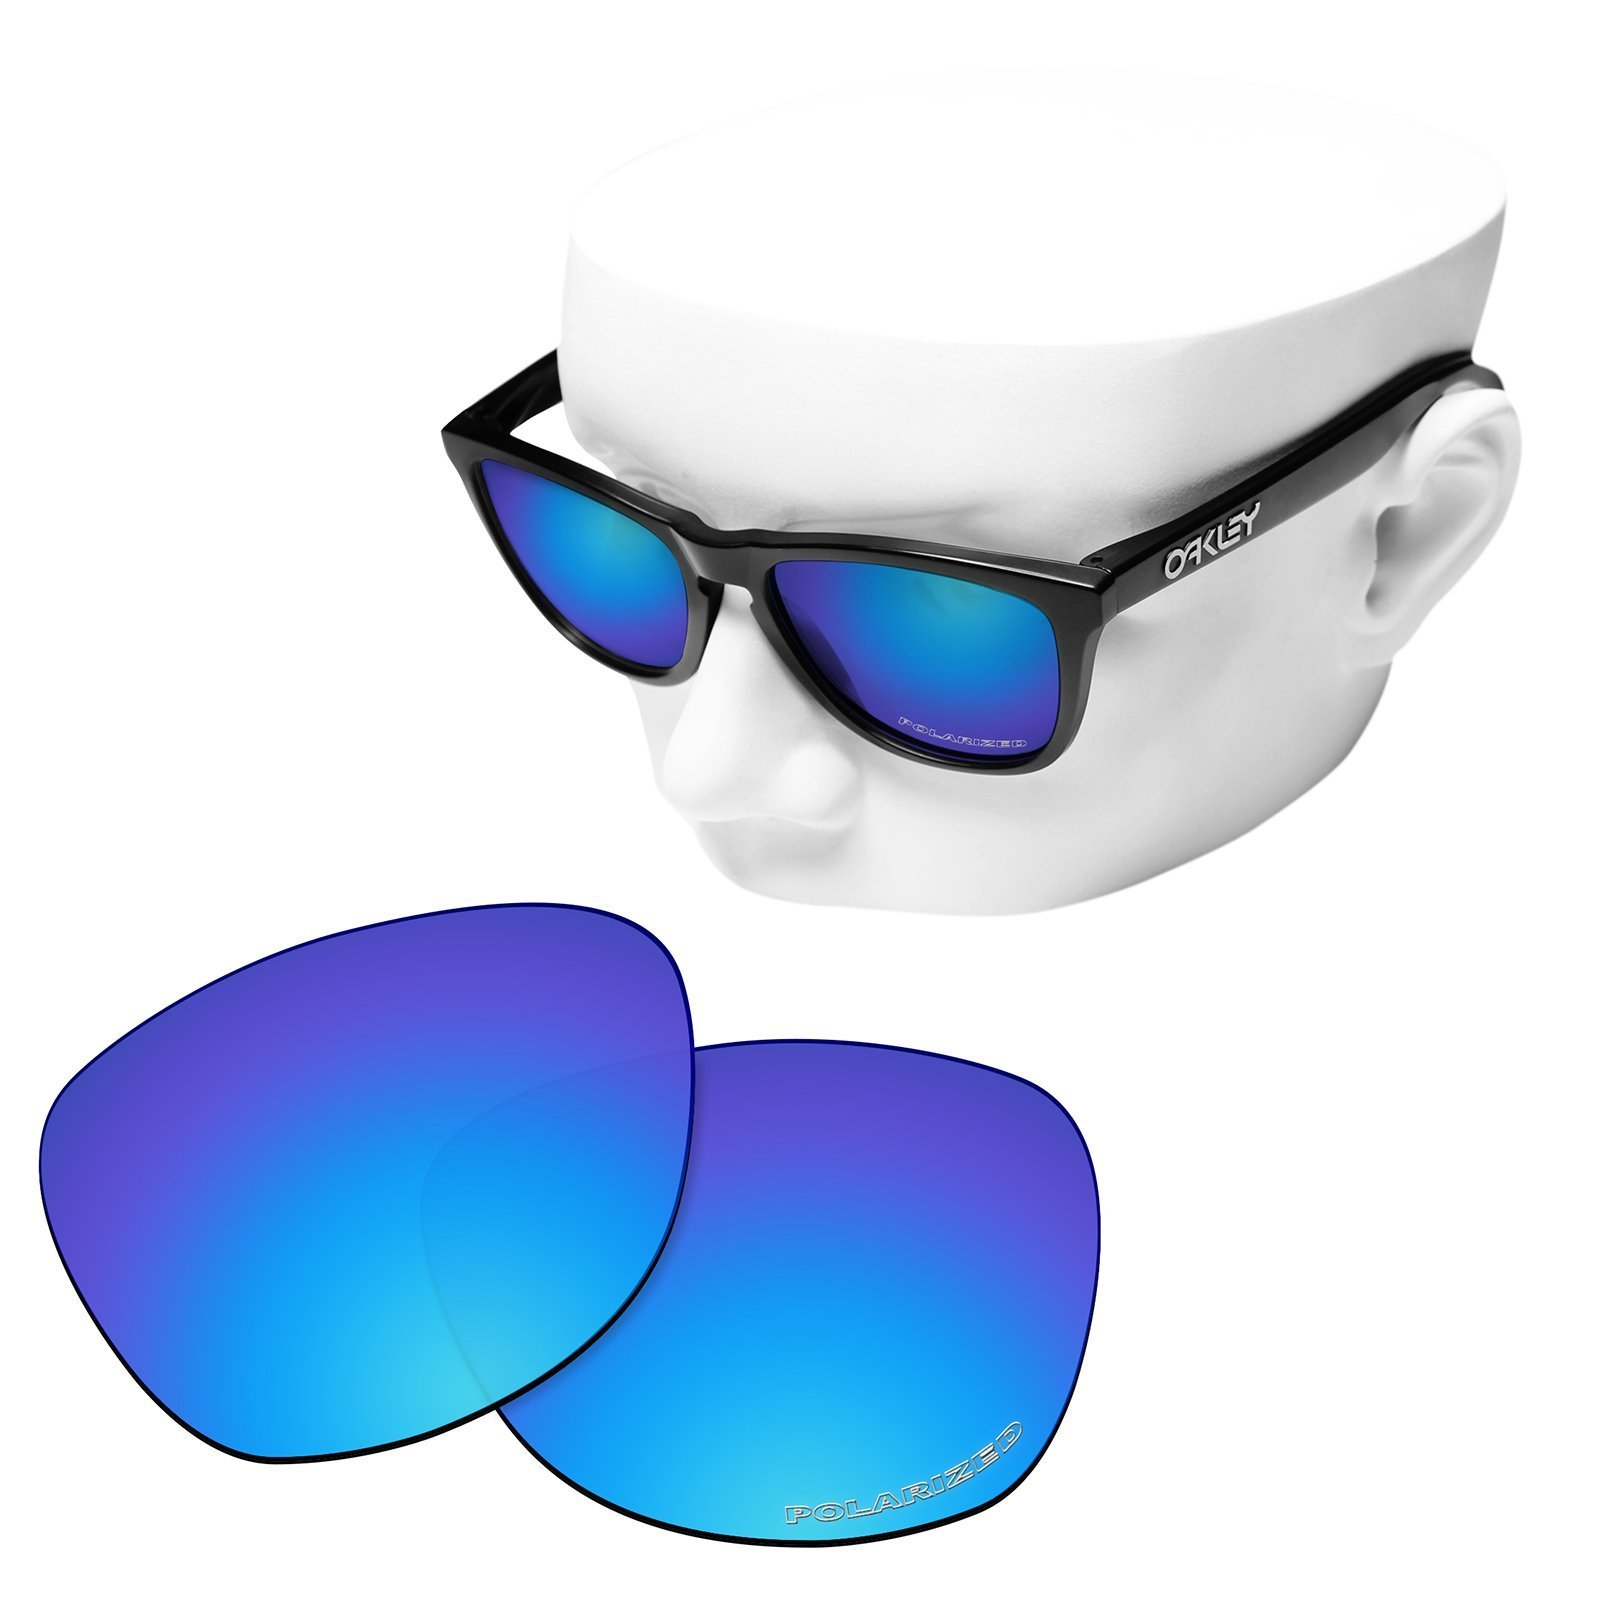 OOWLIT Replacement Sunglass Lenses for Oakley Frogskins Ice Polycarbonate Combine8 Polarized